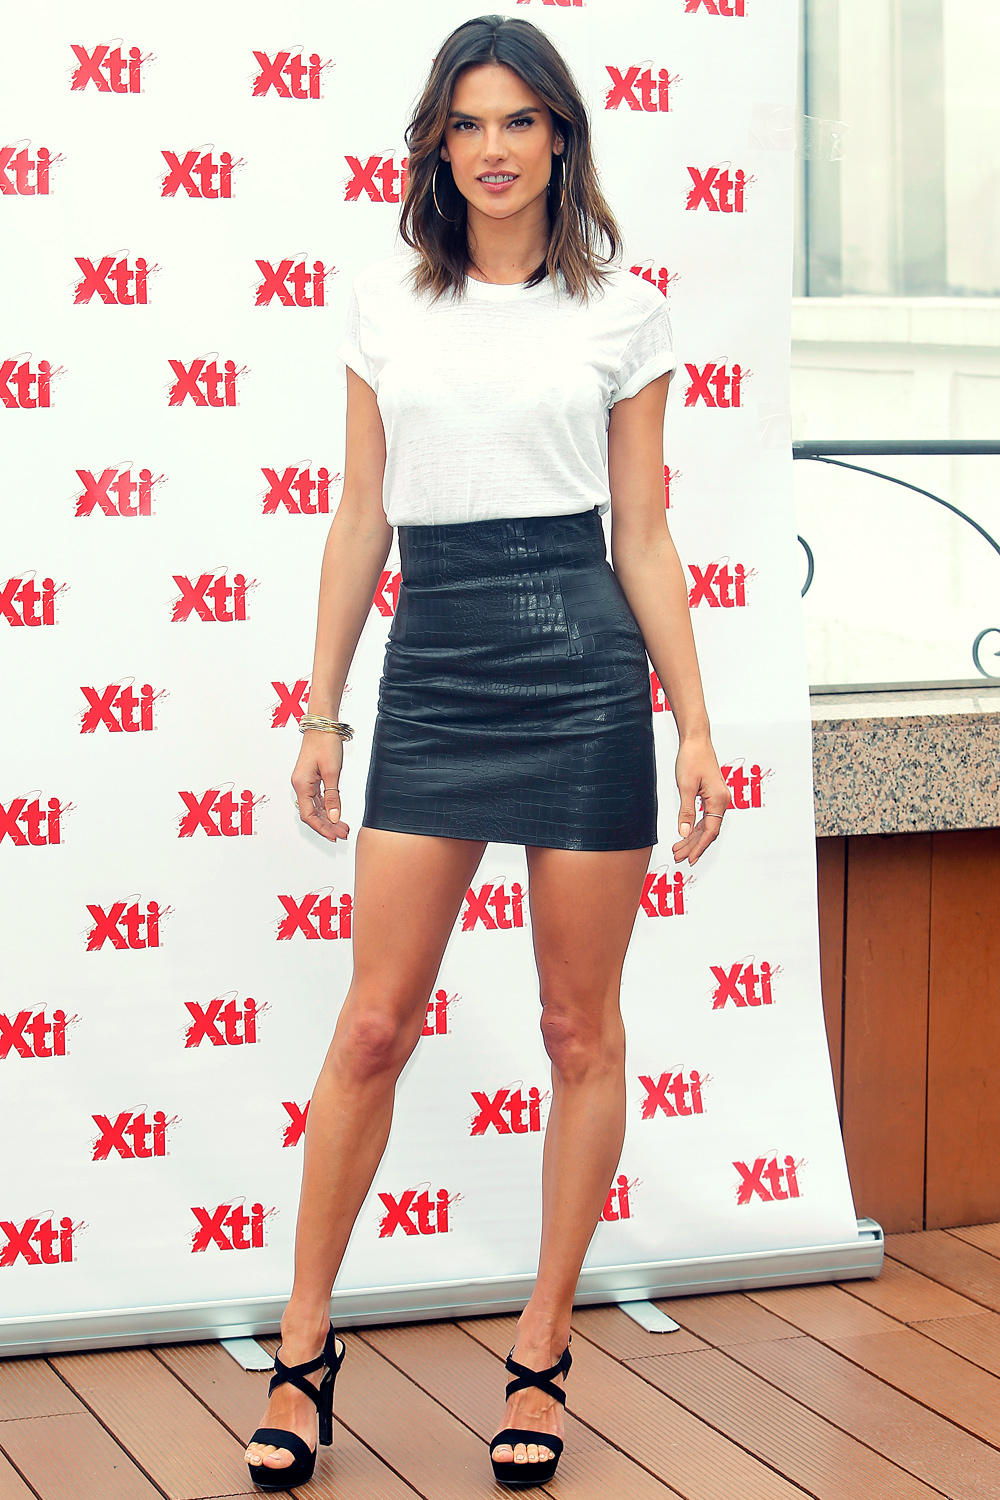 Alessandra Ambrosio attends XTI New Collection